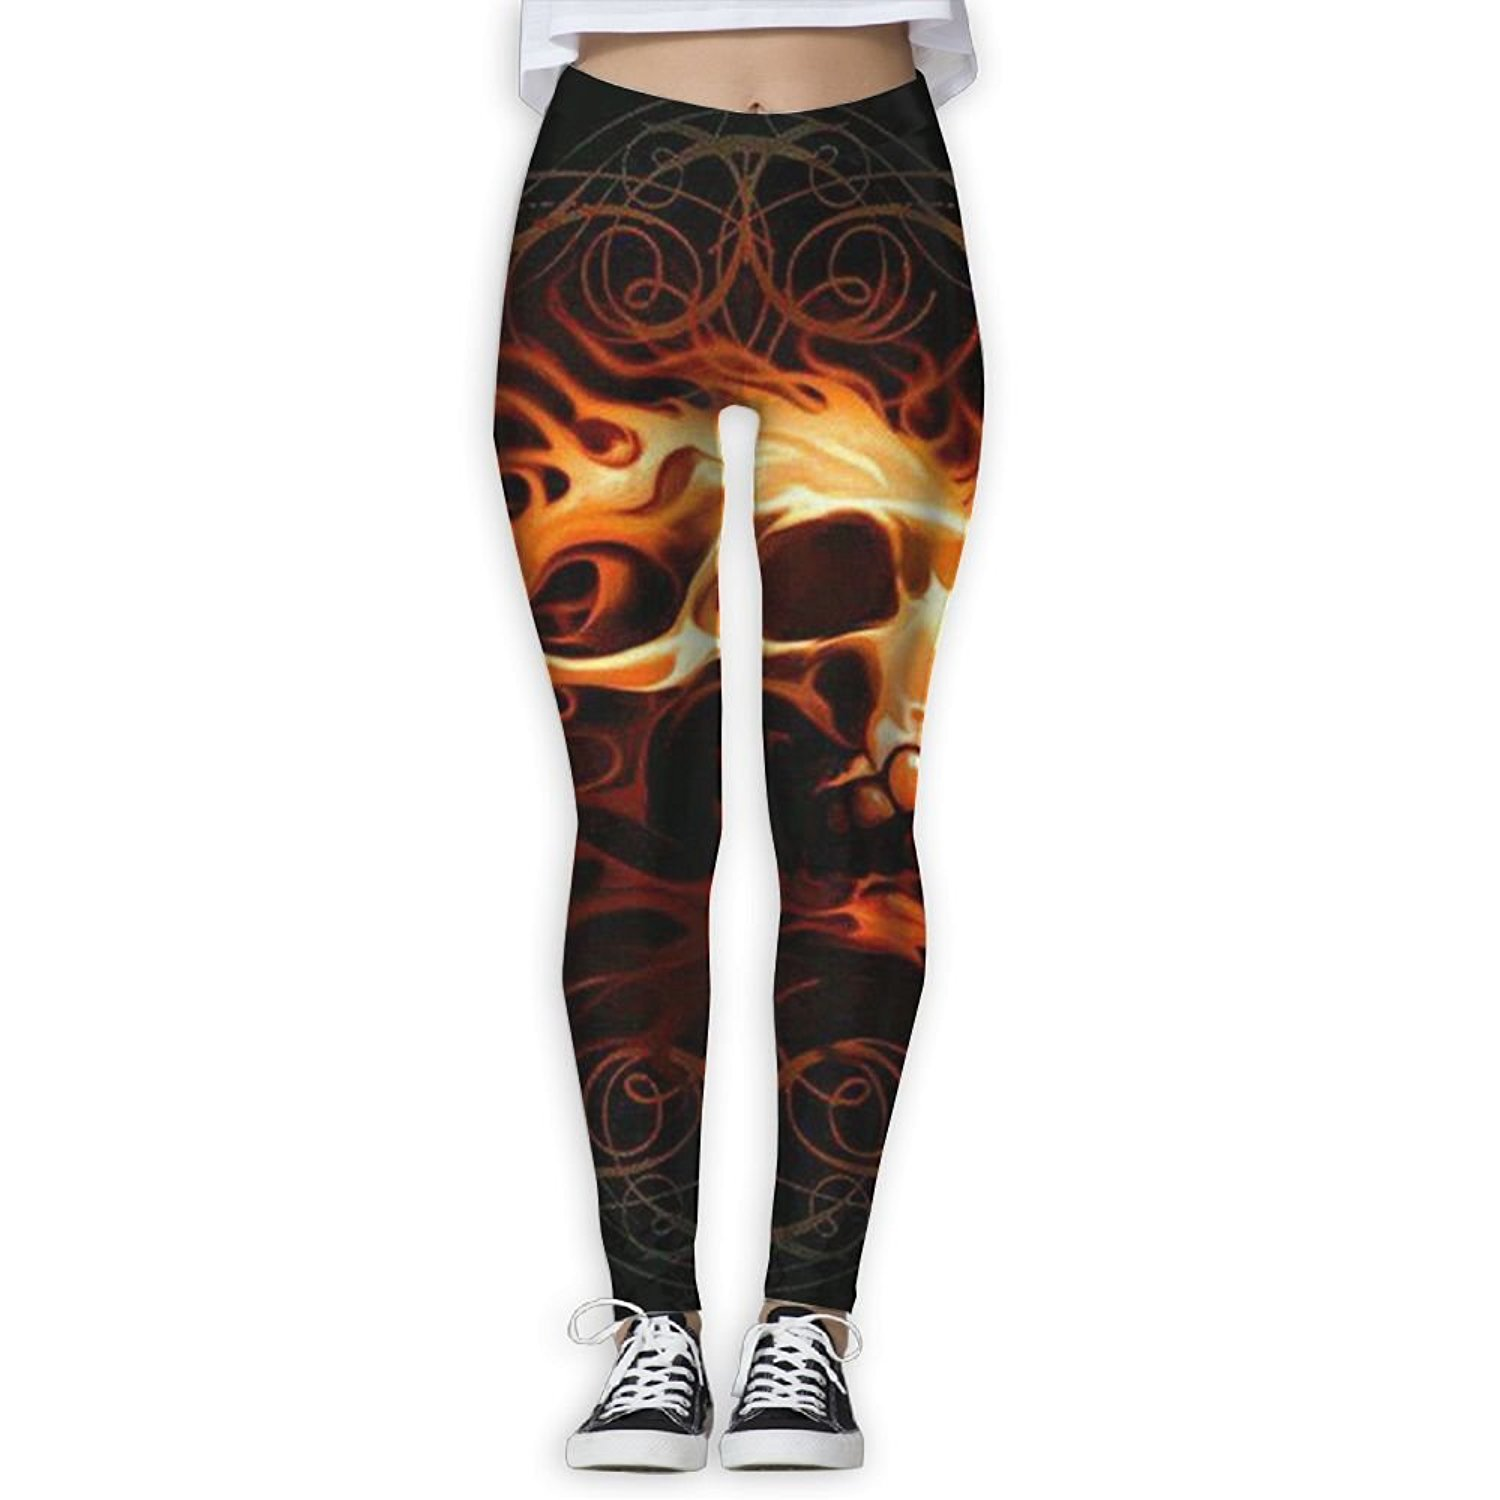 d7a6f8b76b9 Get Quotations · PWiggy Womens Yoga Leggings Flame Skull Compression Sports Tights  Pants Athletic Leggings